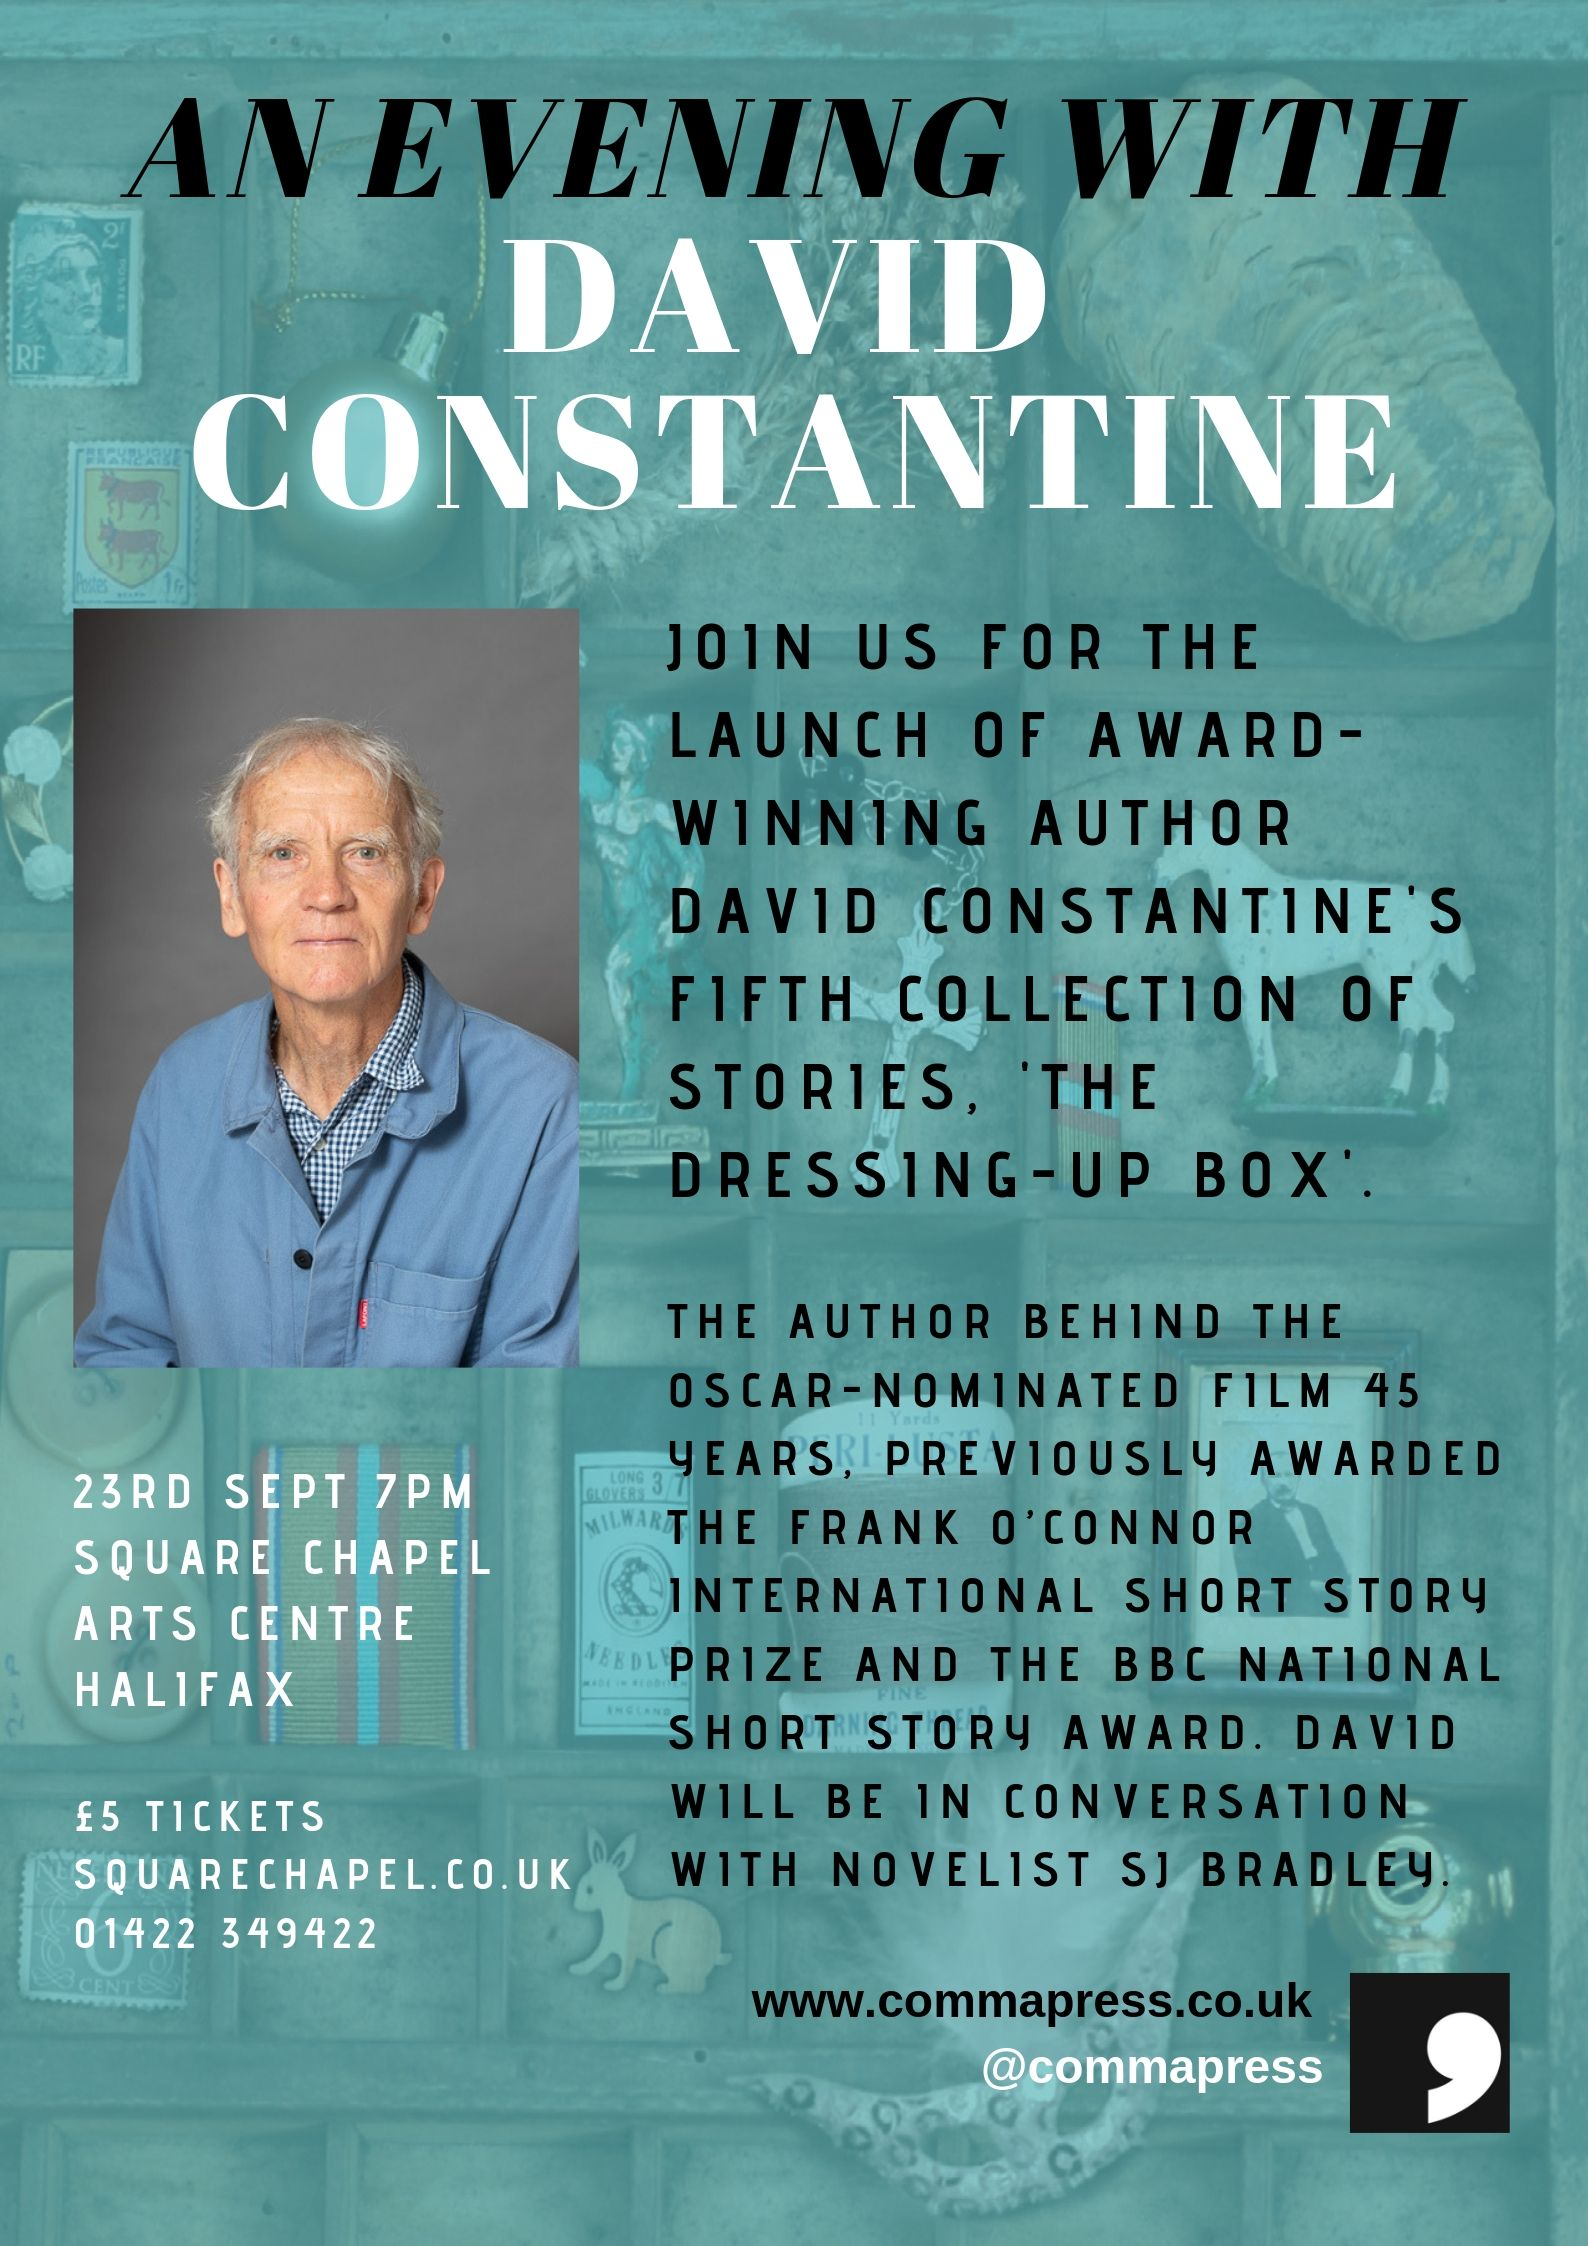 An evening with David Constantine at Square Chapel